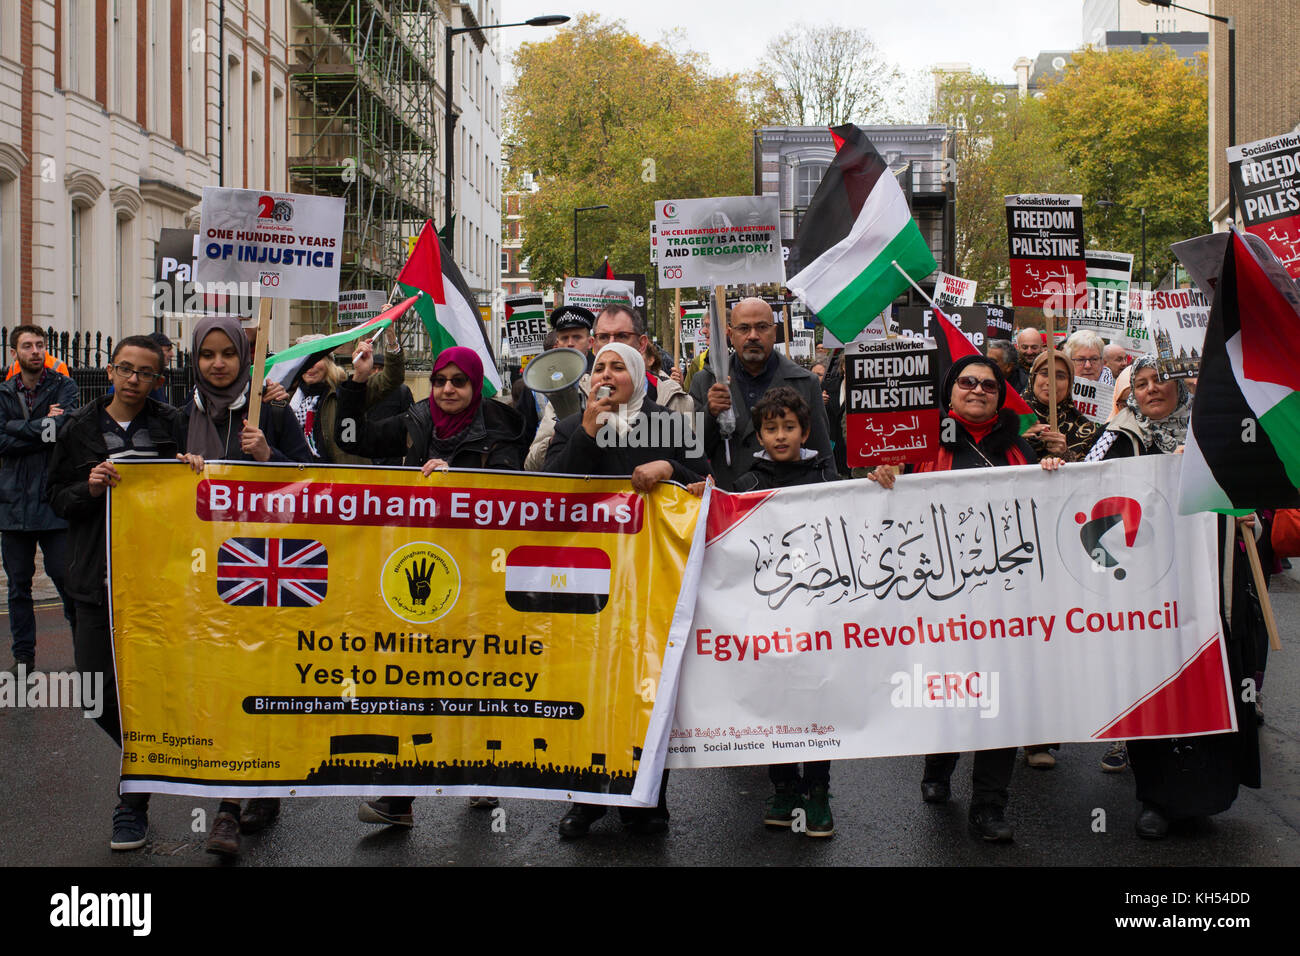 Pro-rights for Egypt protestors join the march for Palestine on the centenary of the Balfour Declaration, London - Stock Image